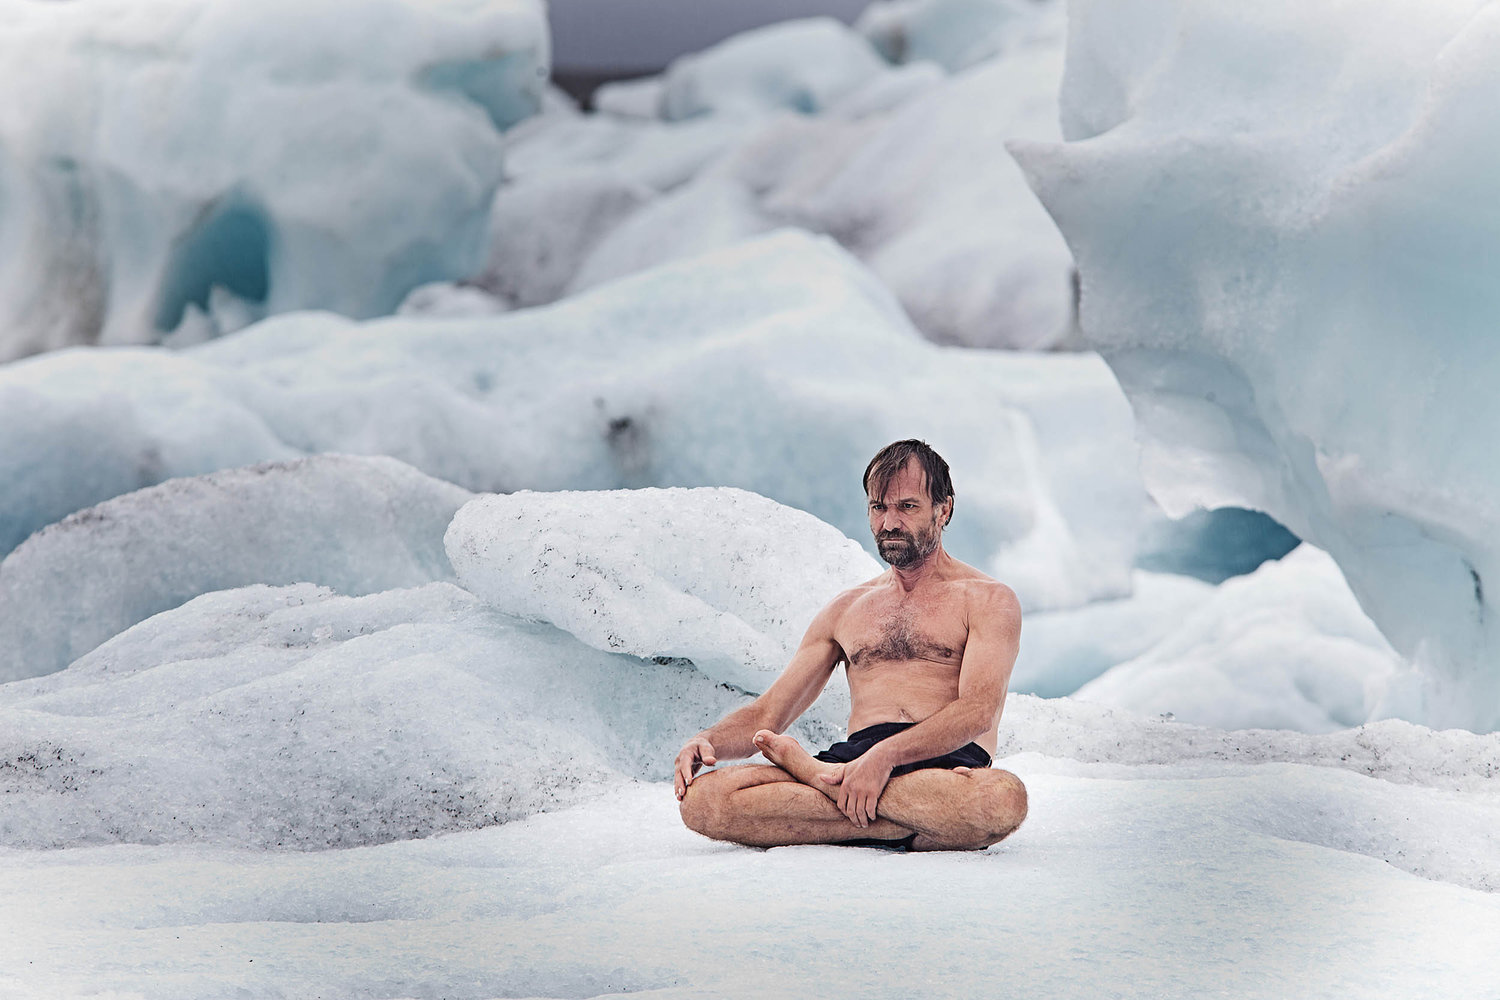 wim-hof-method-ice-bath7